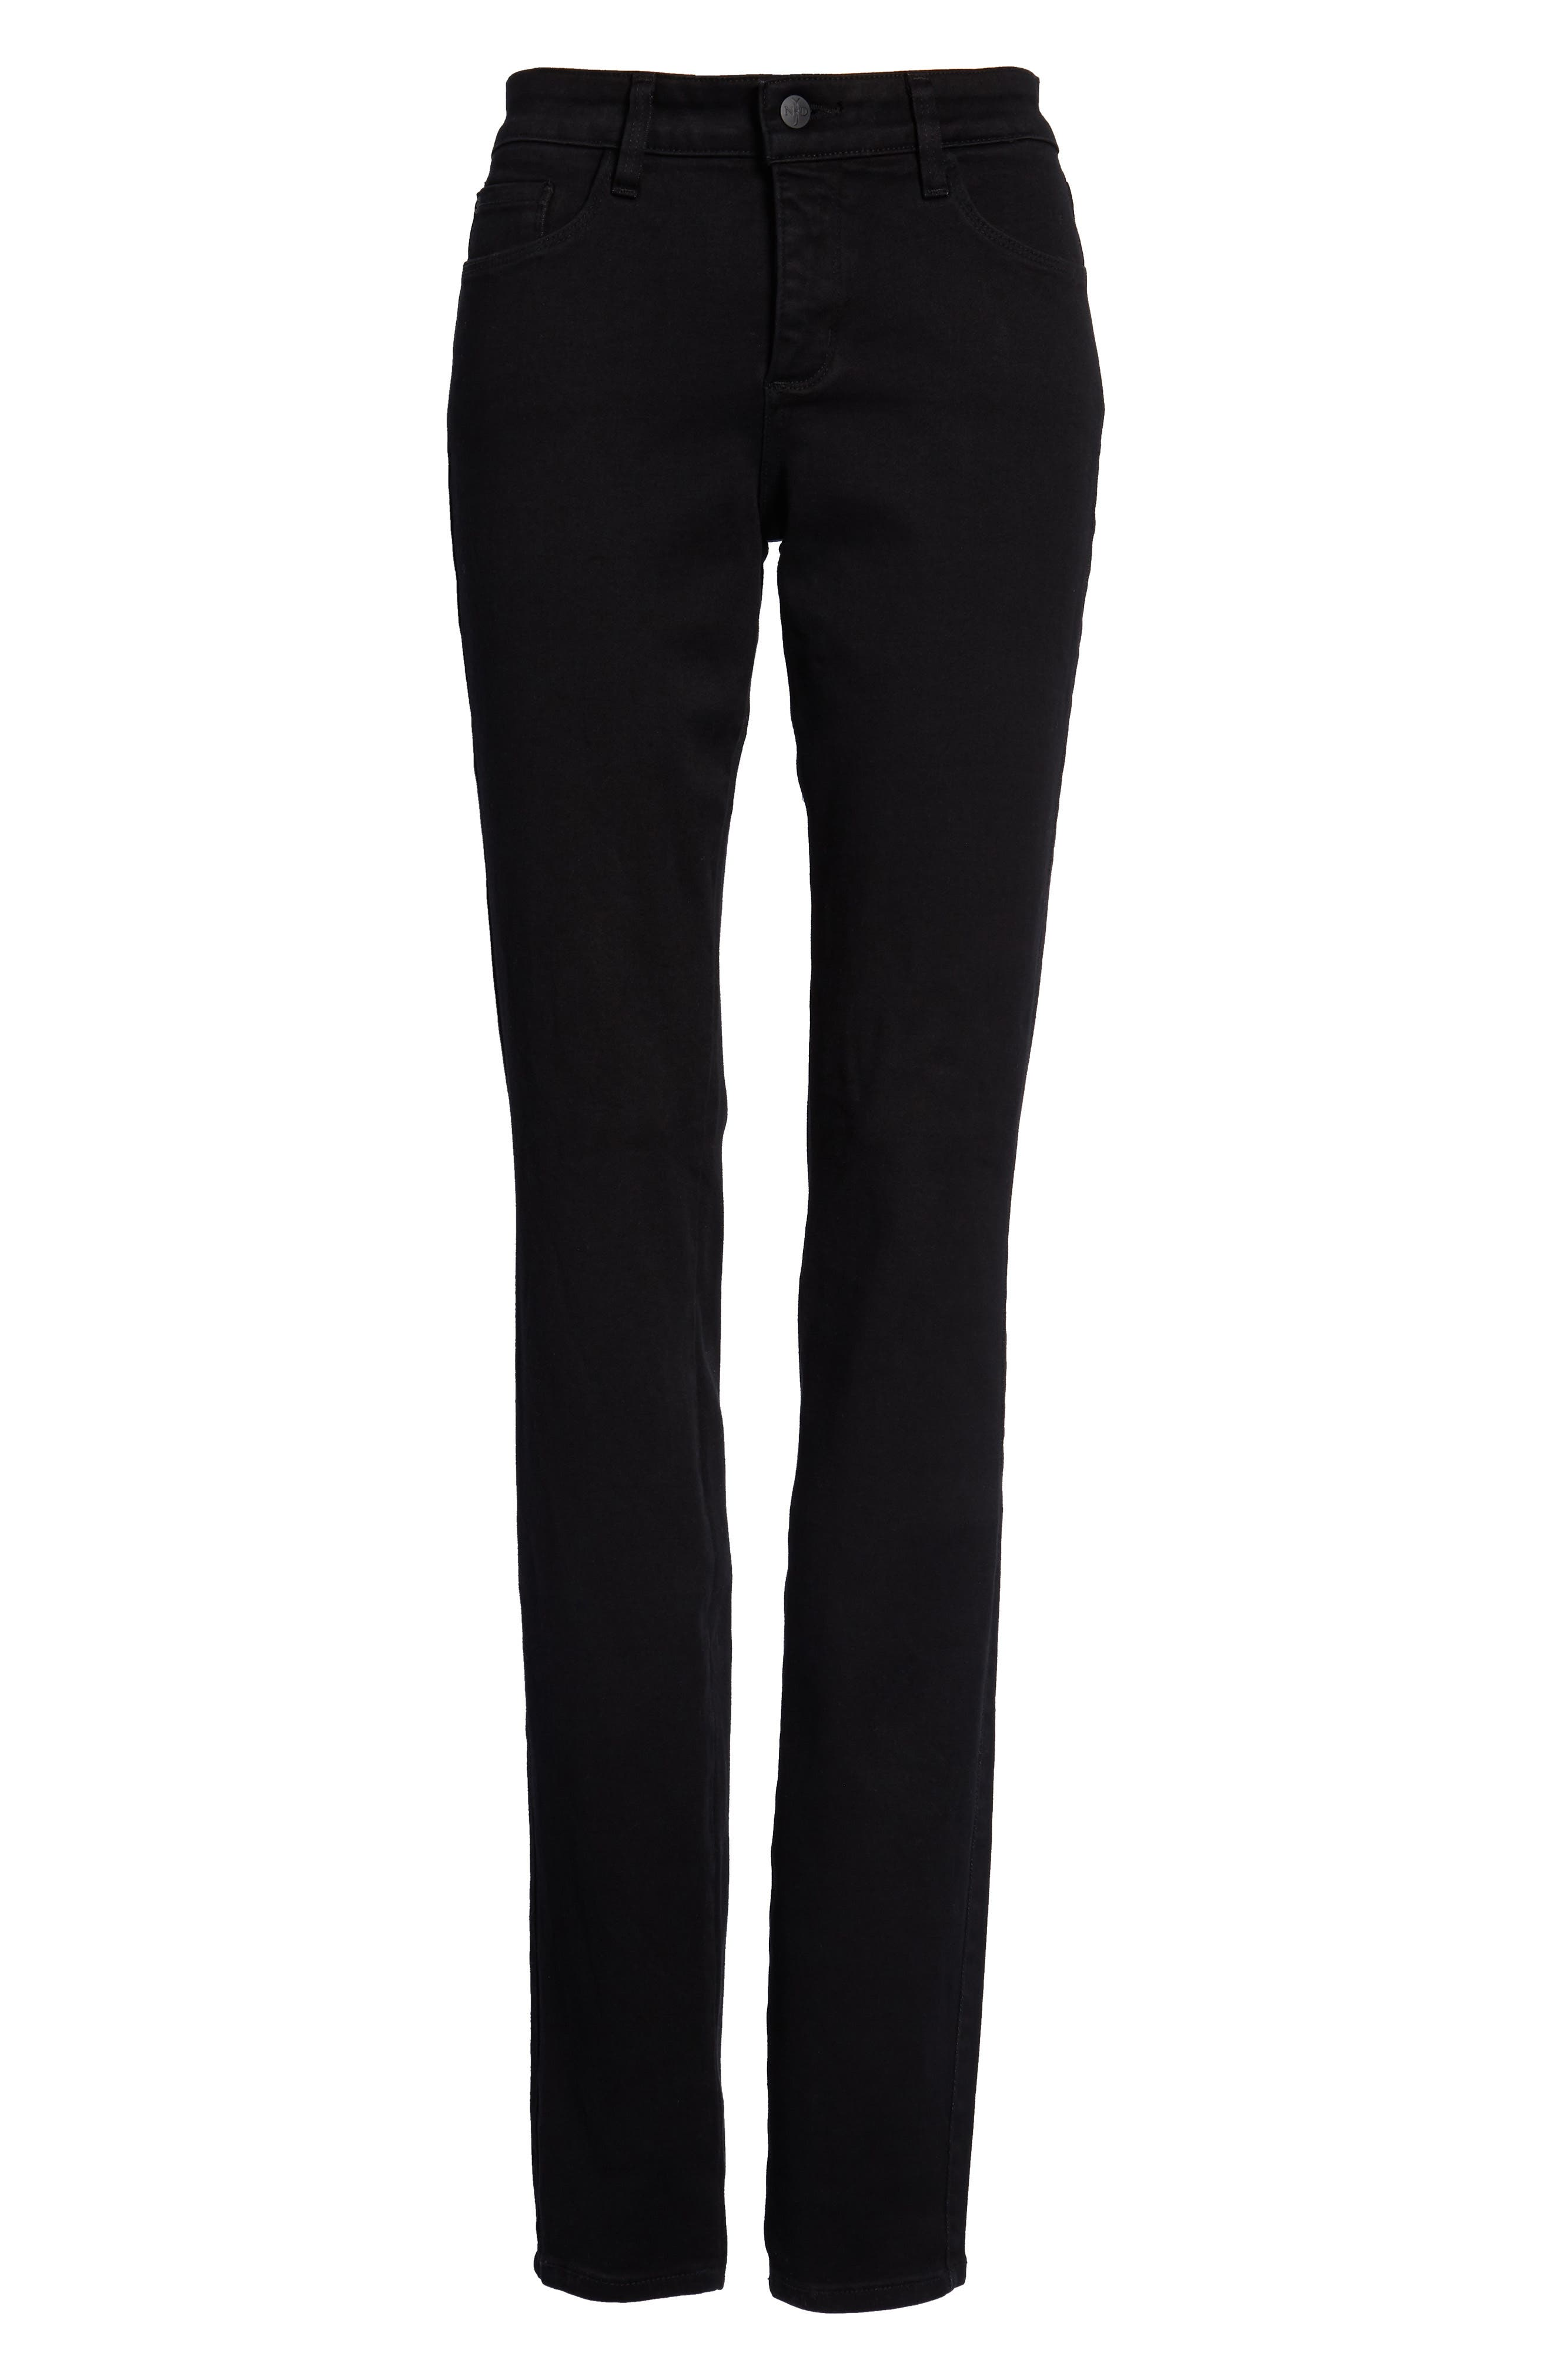 Alina Stretch Skinny Jeans,                             Alternate thumbnail 7, color,                             001